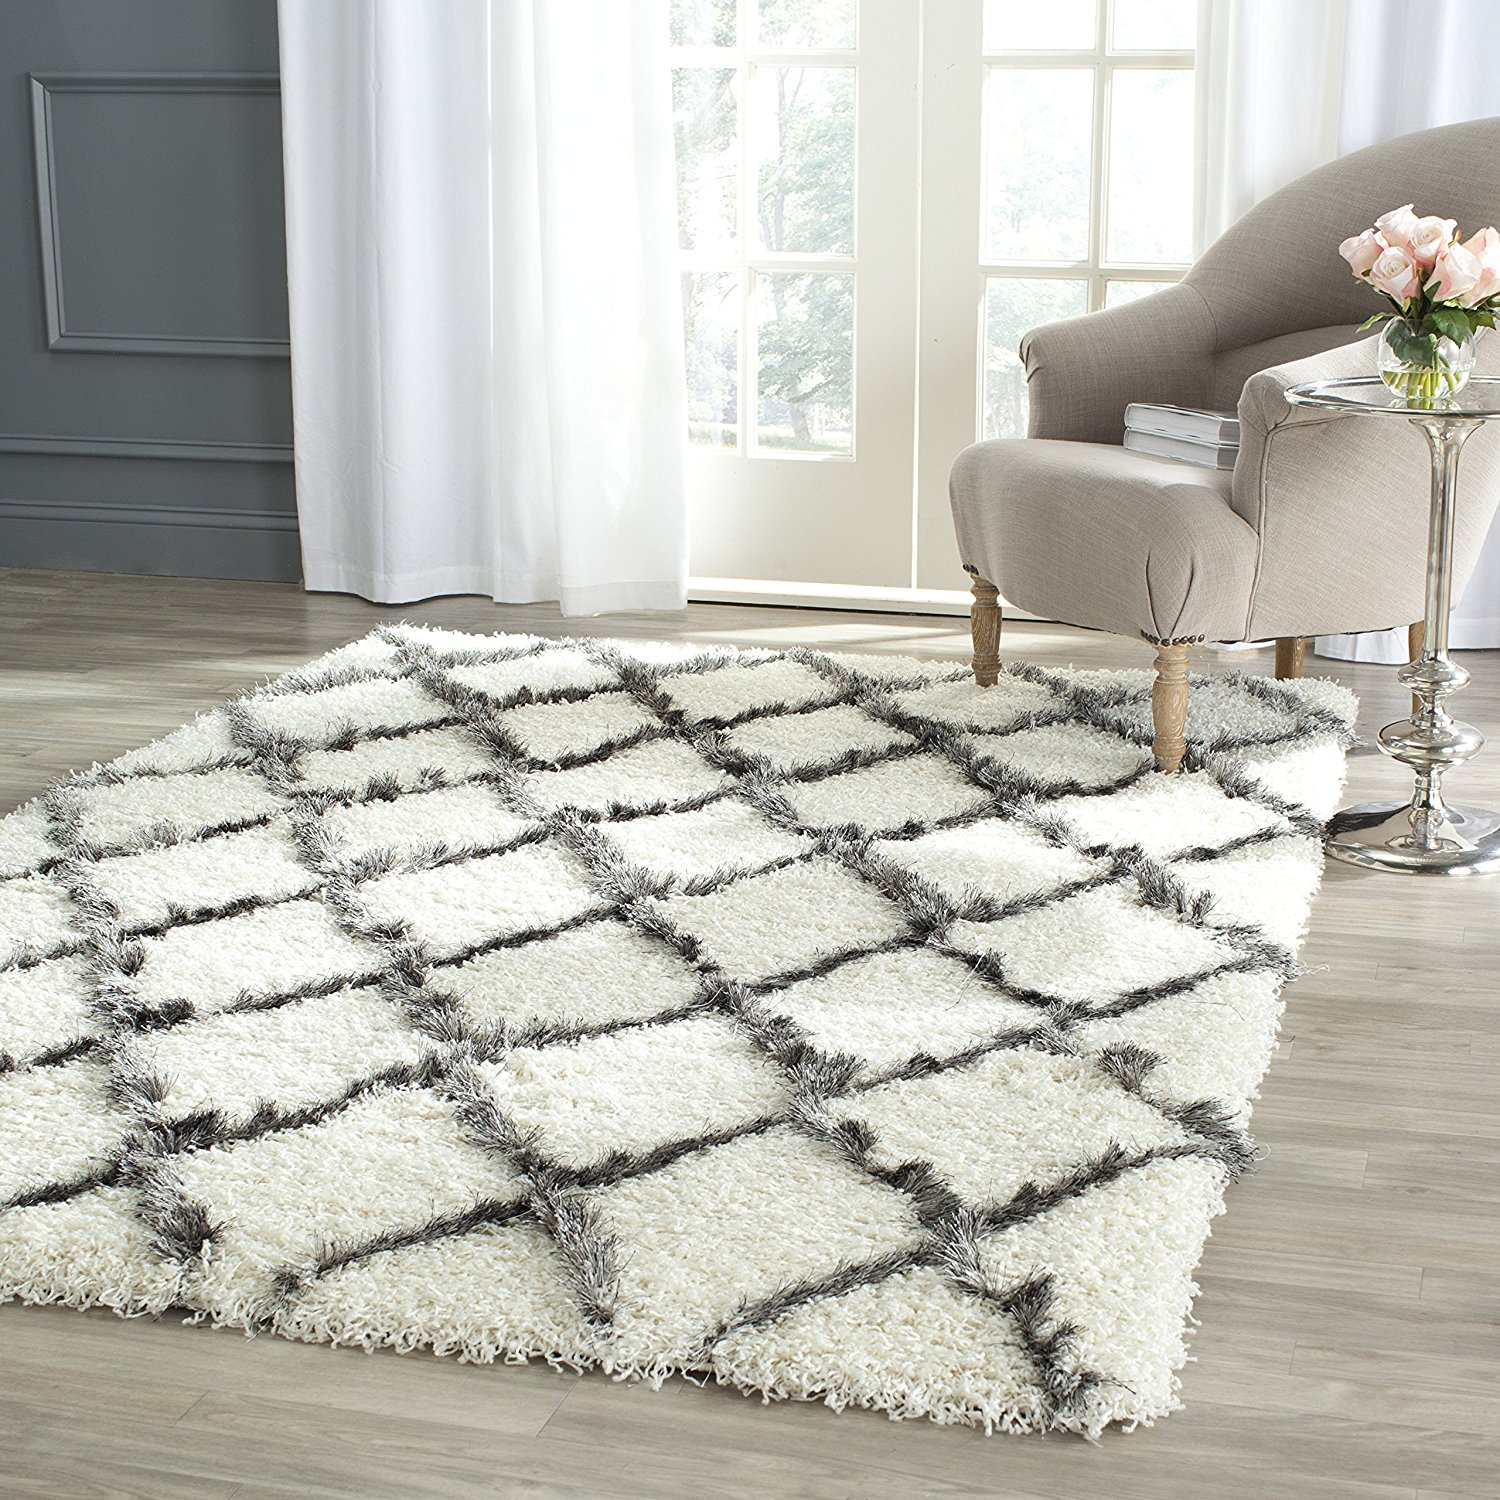 Magnificent Marrakesh Shag Rug | Incredible Shag Carpet Rugs